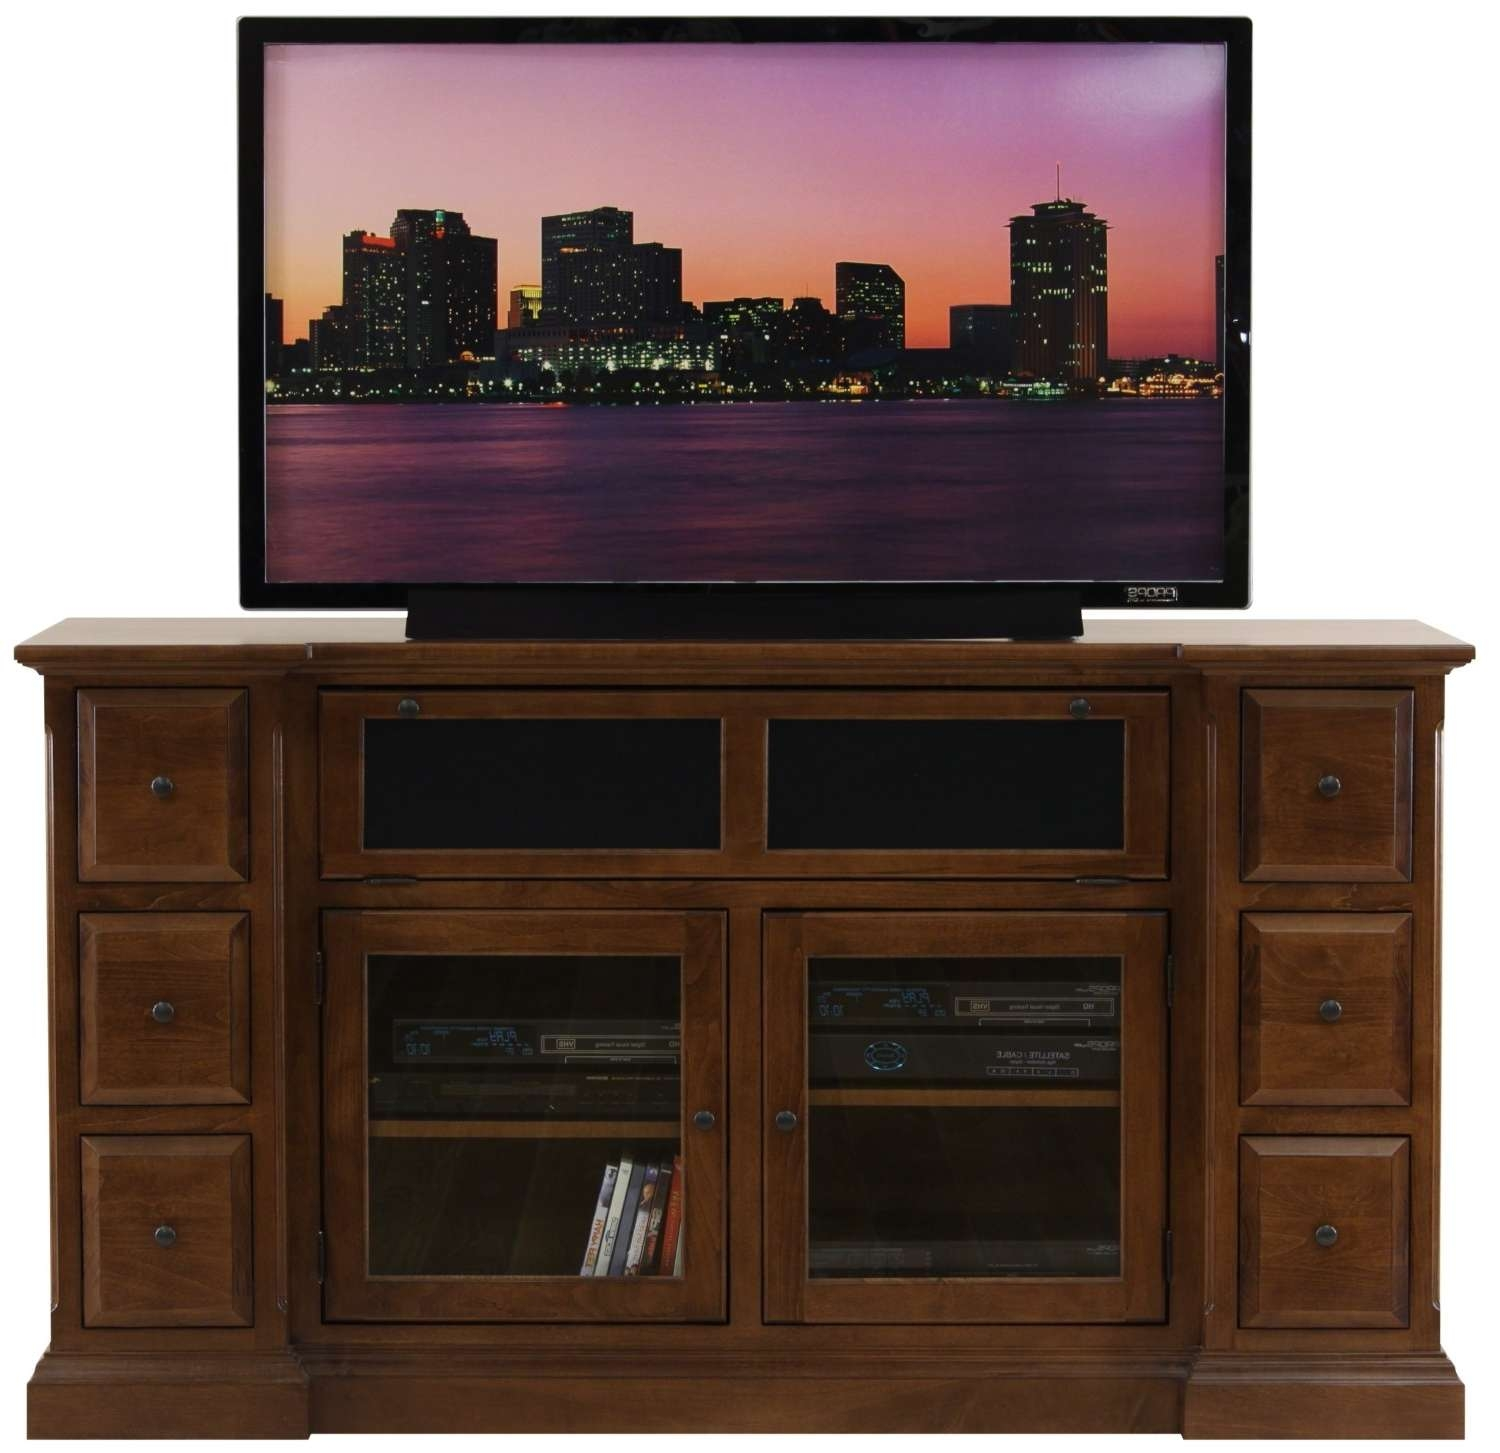 Brown Wooden Tv Stand With Storage With Glass Doors Combined With Regarding Wooden Tv Cabinets (View 17 of 20)